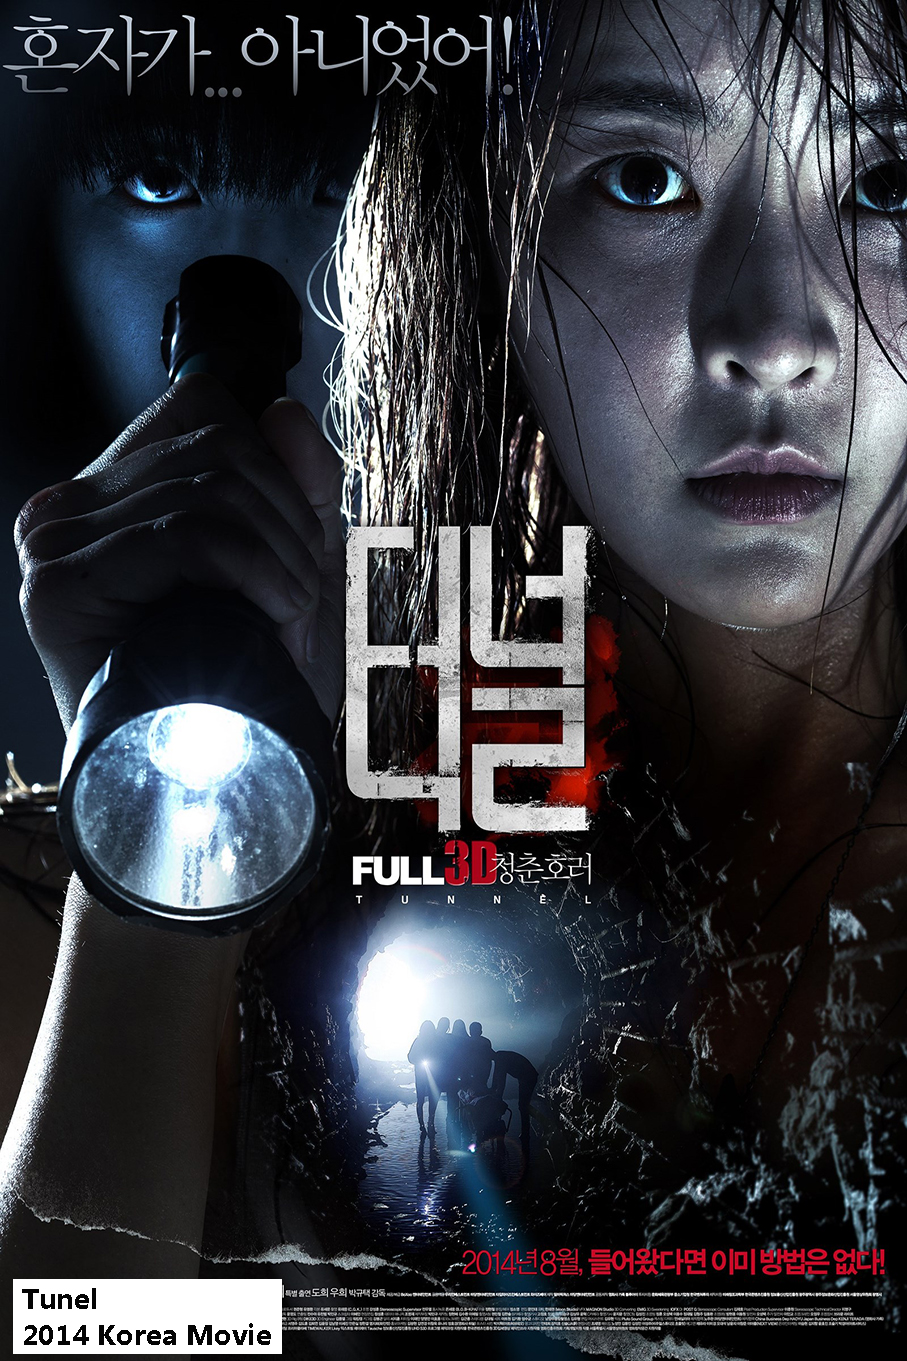 Tunnel [2014 Korea Movie] Horror